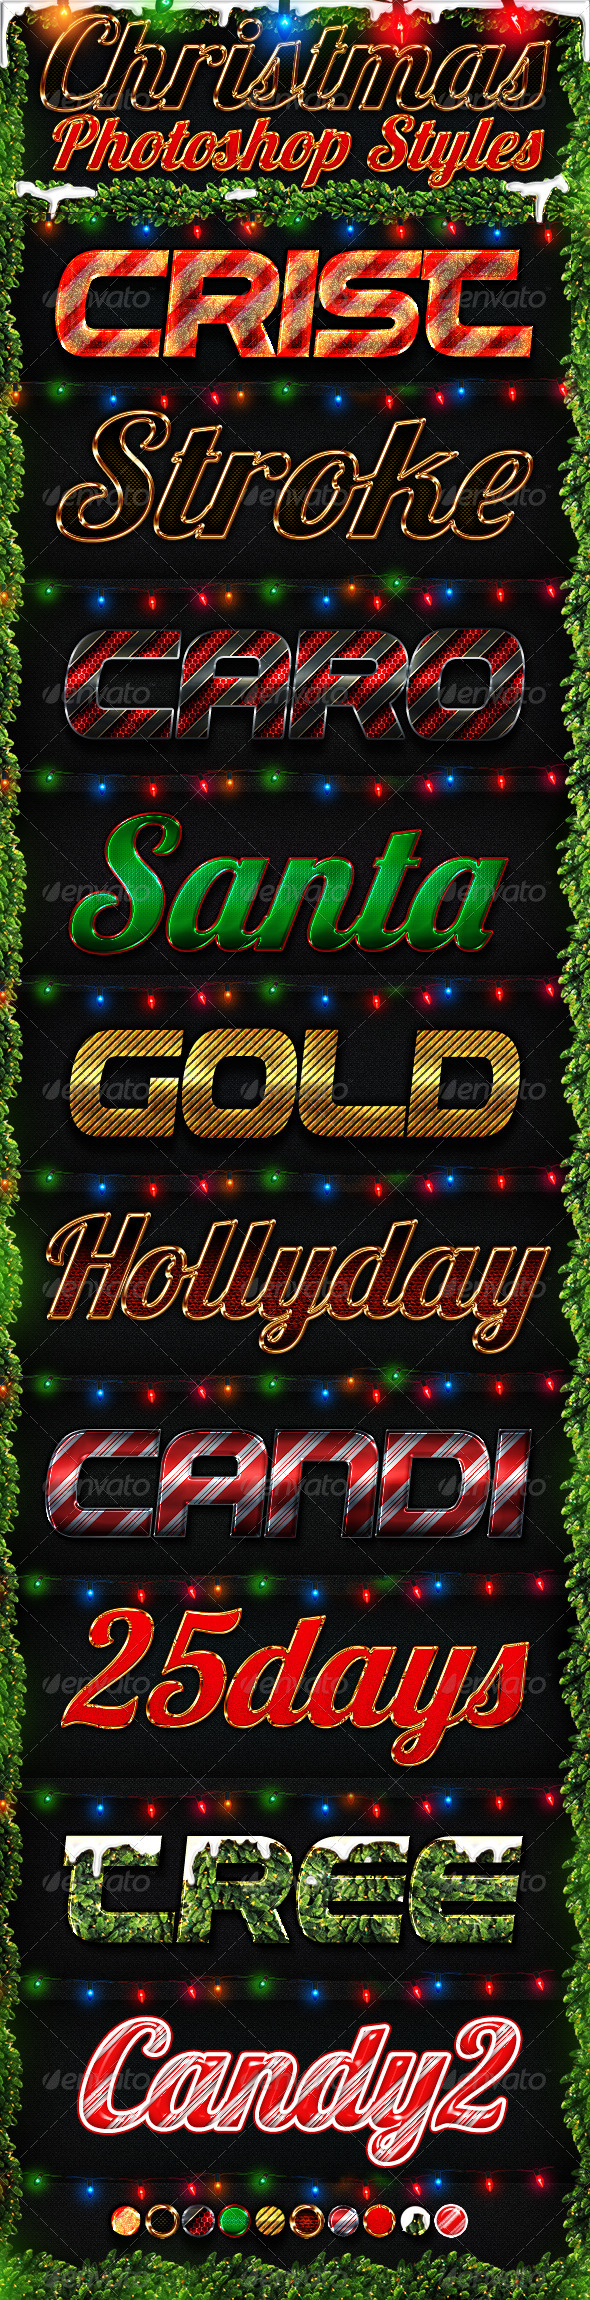 Magical Christmas Text Effects And Photoshop Styles Entheos